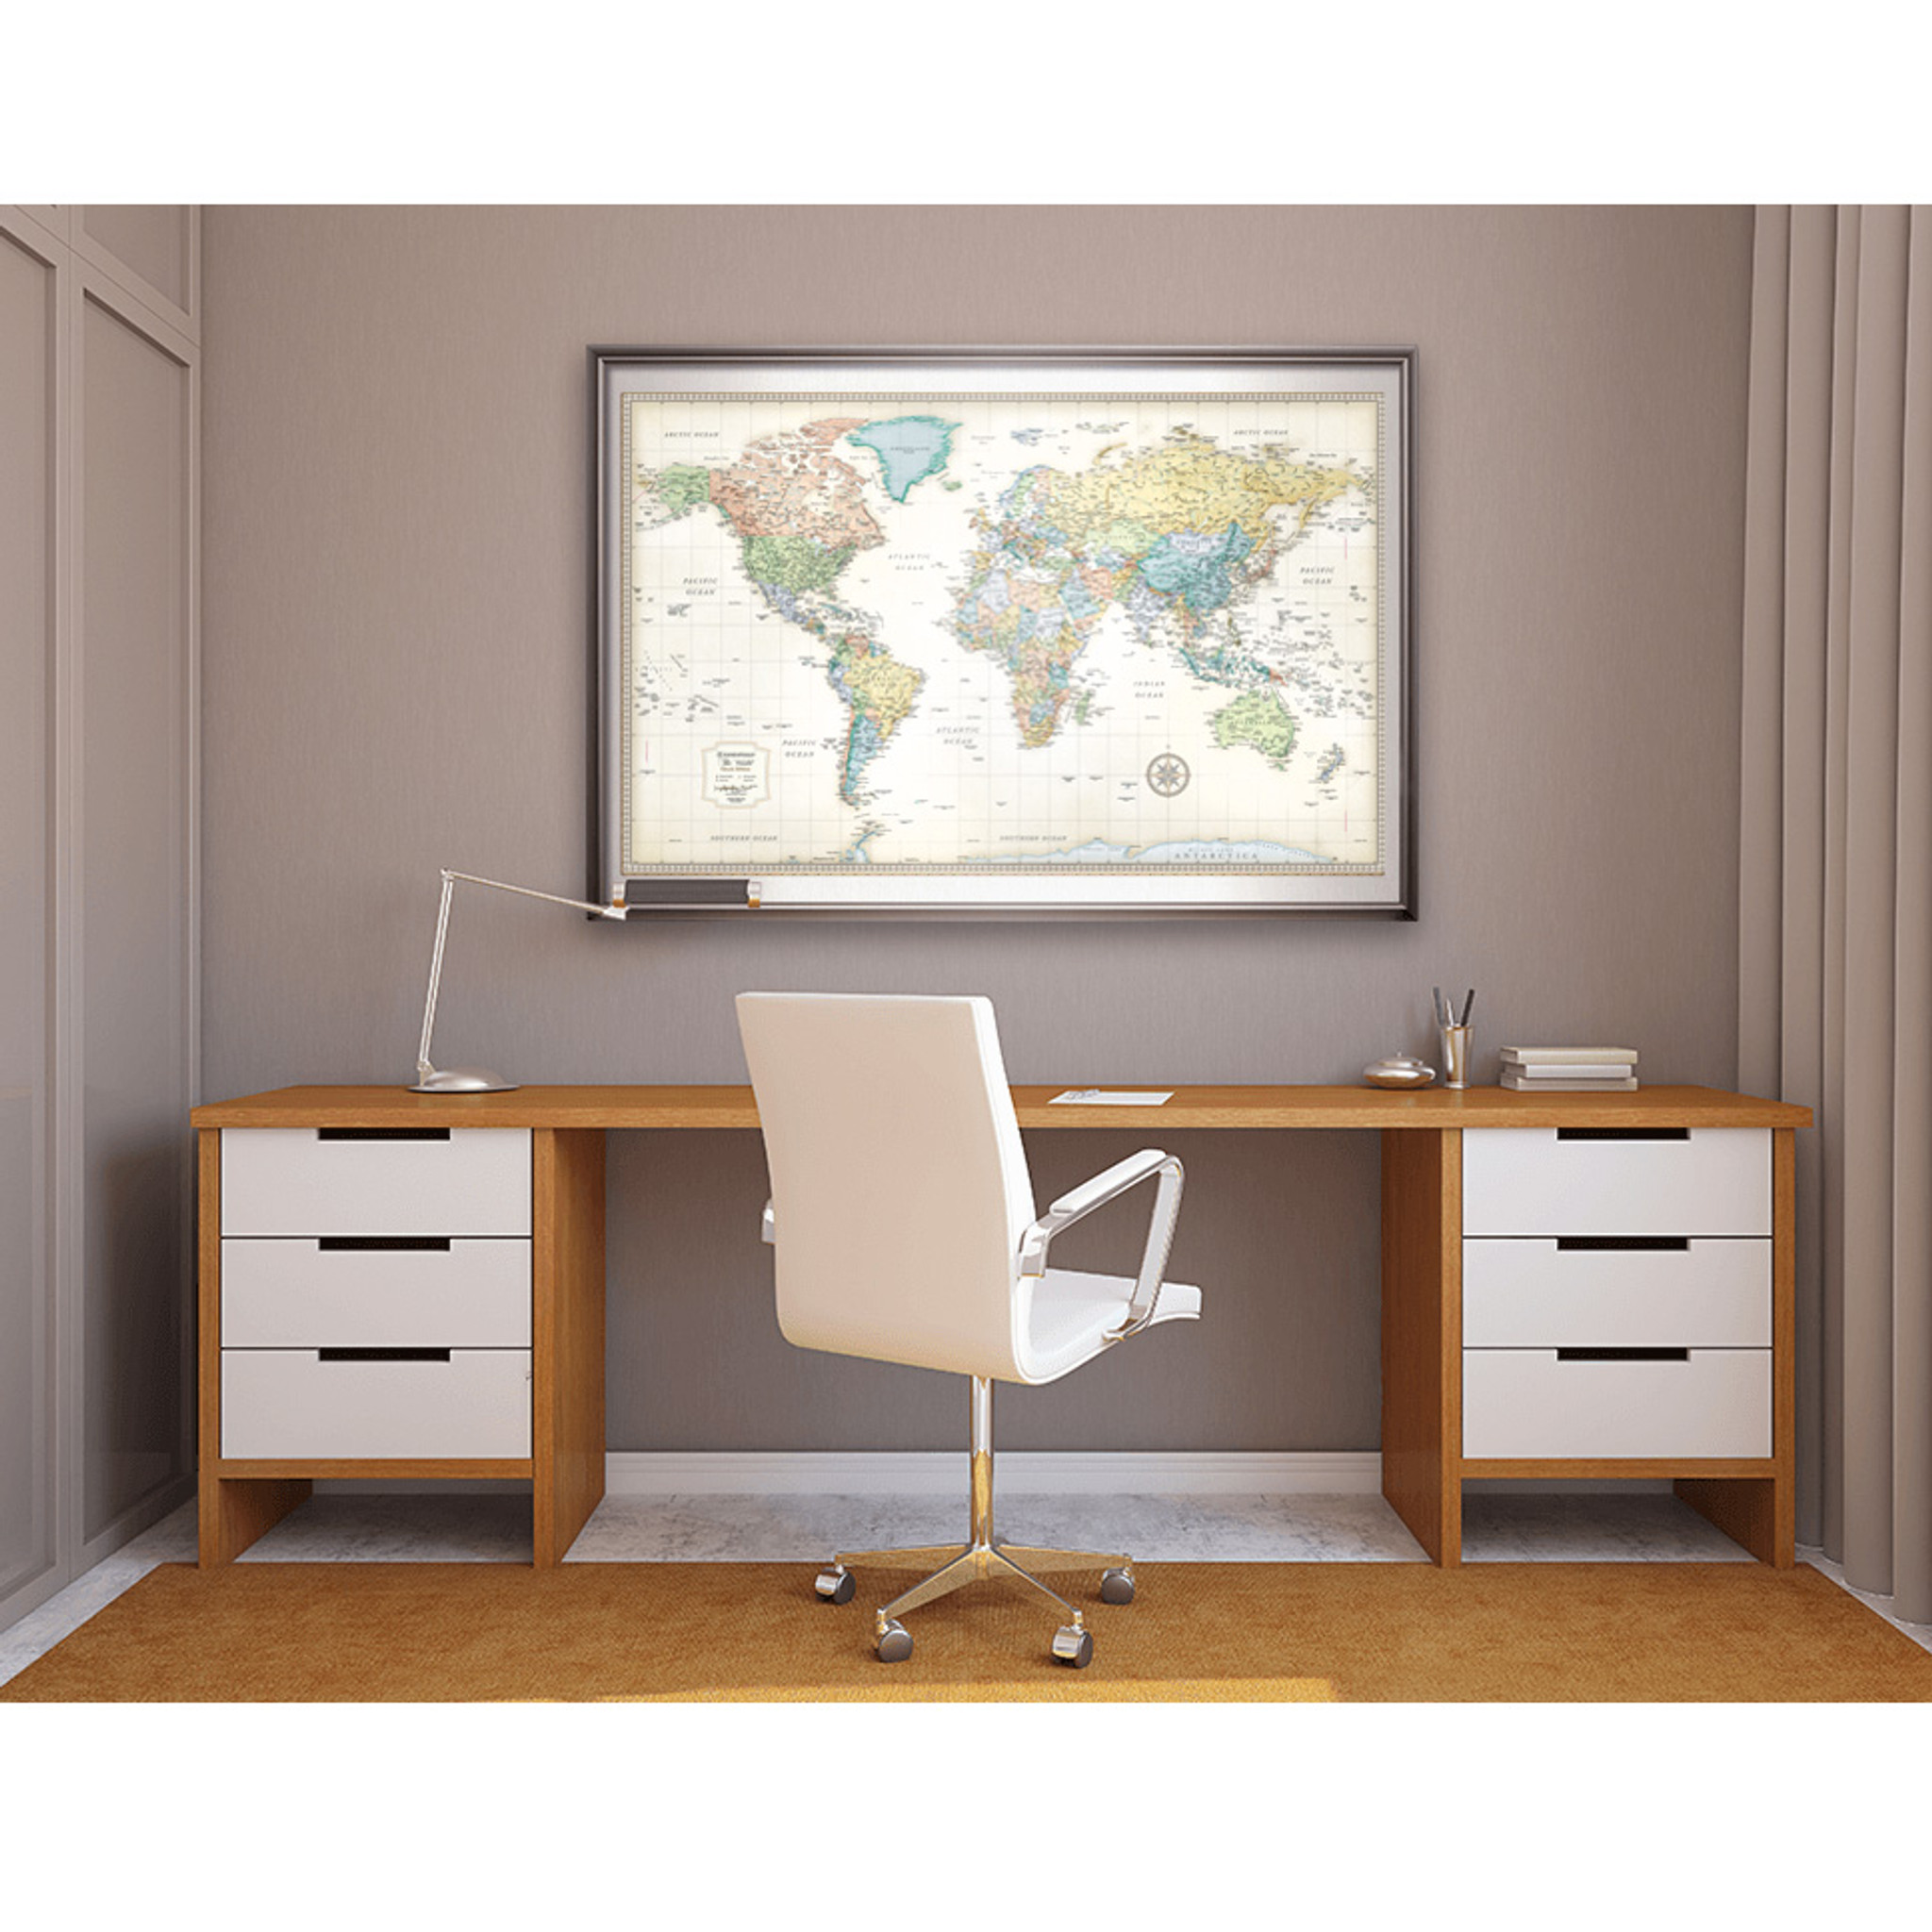 Classic Edition World Framed Wall Map Rand Mcnally Store